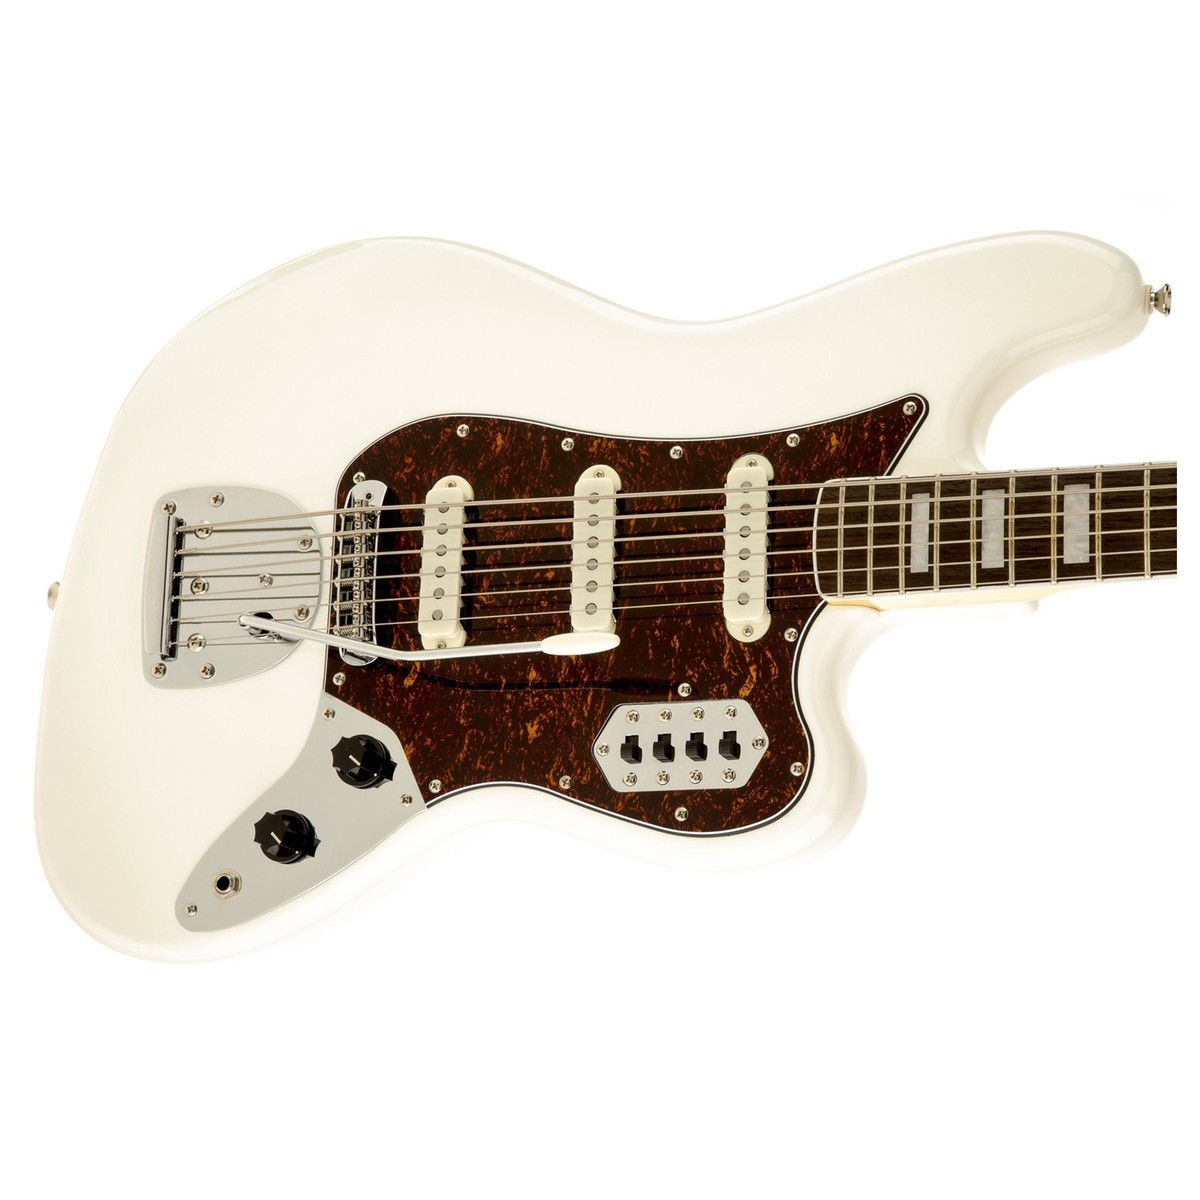 Squier by fender vintage modified